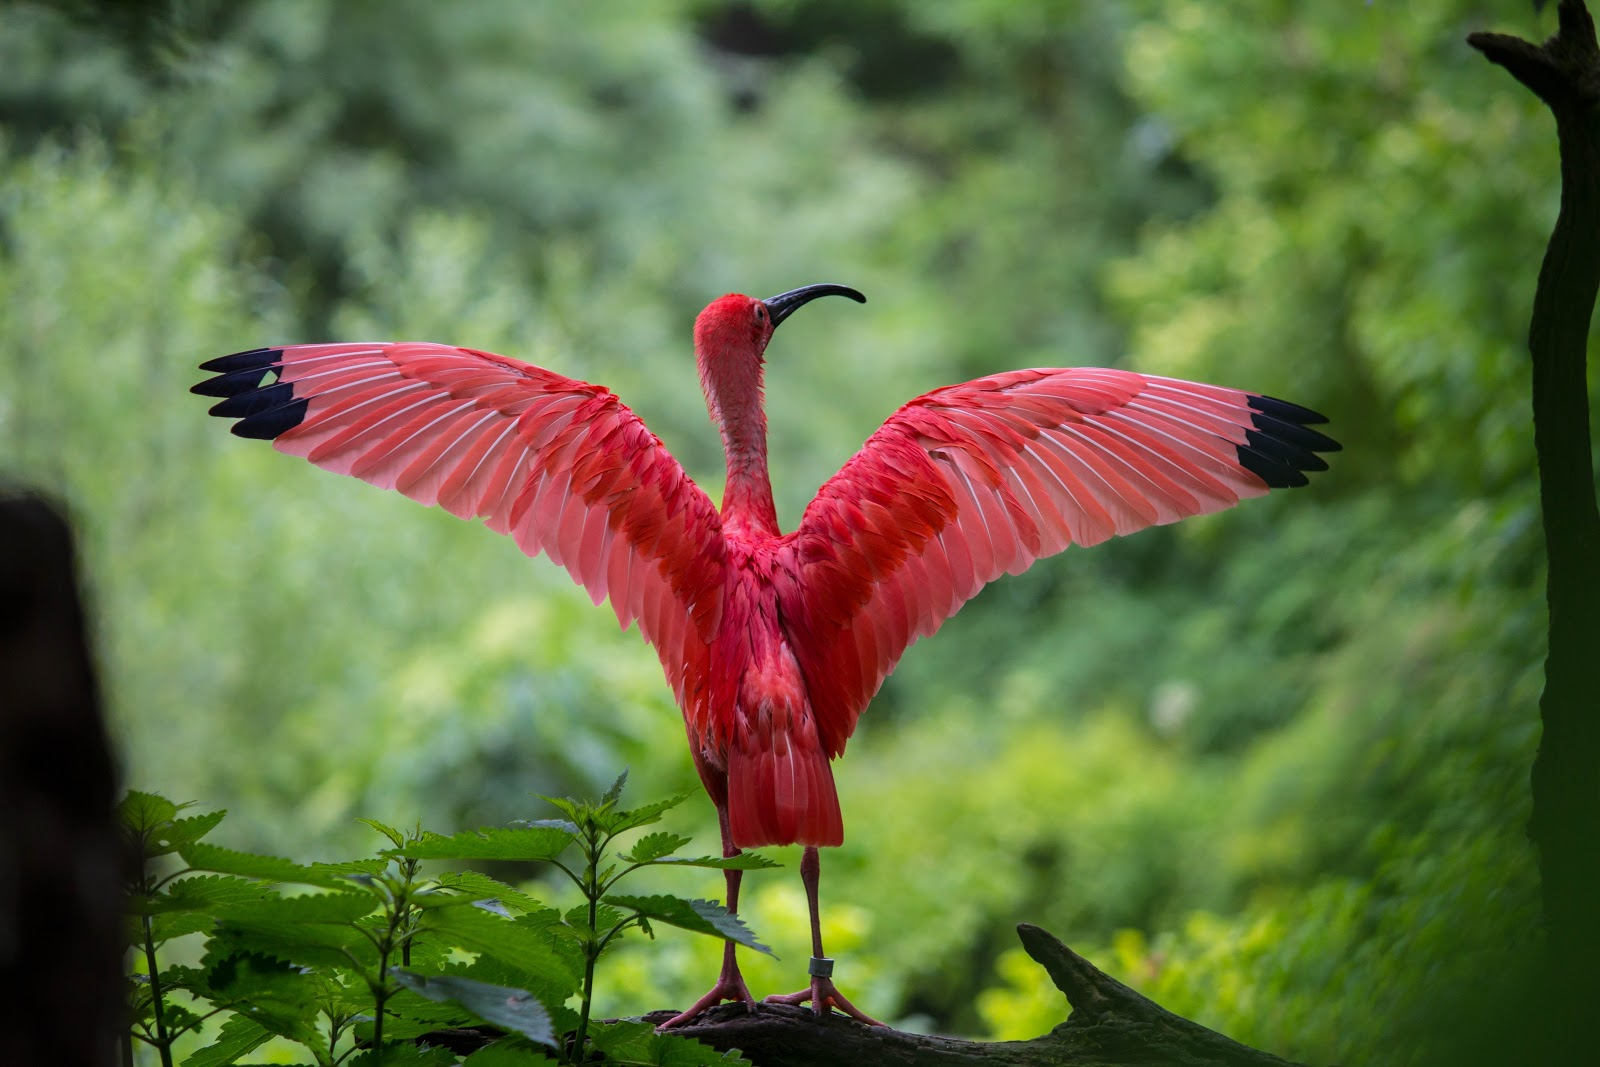 flamingo-spreading-its-wings-birds-images